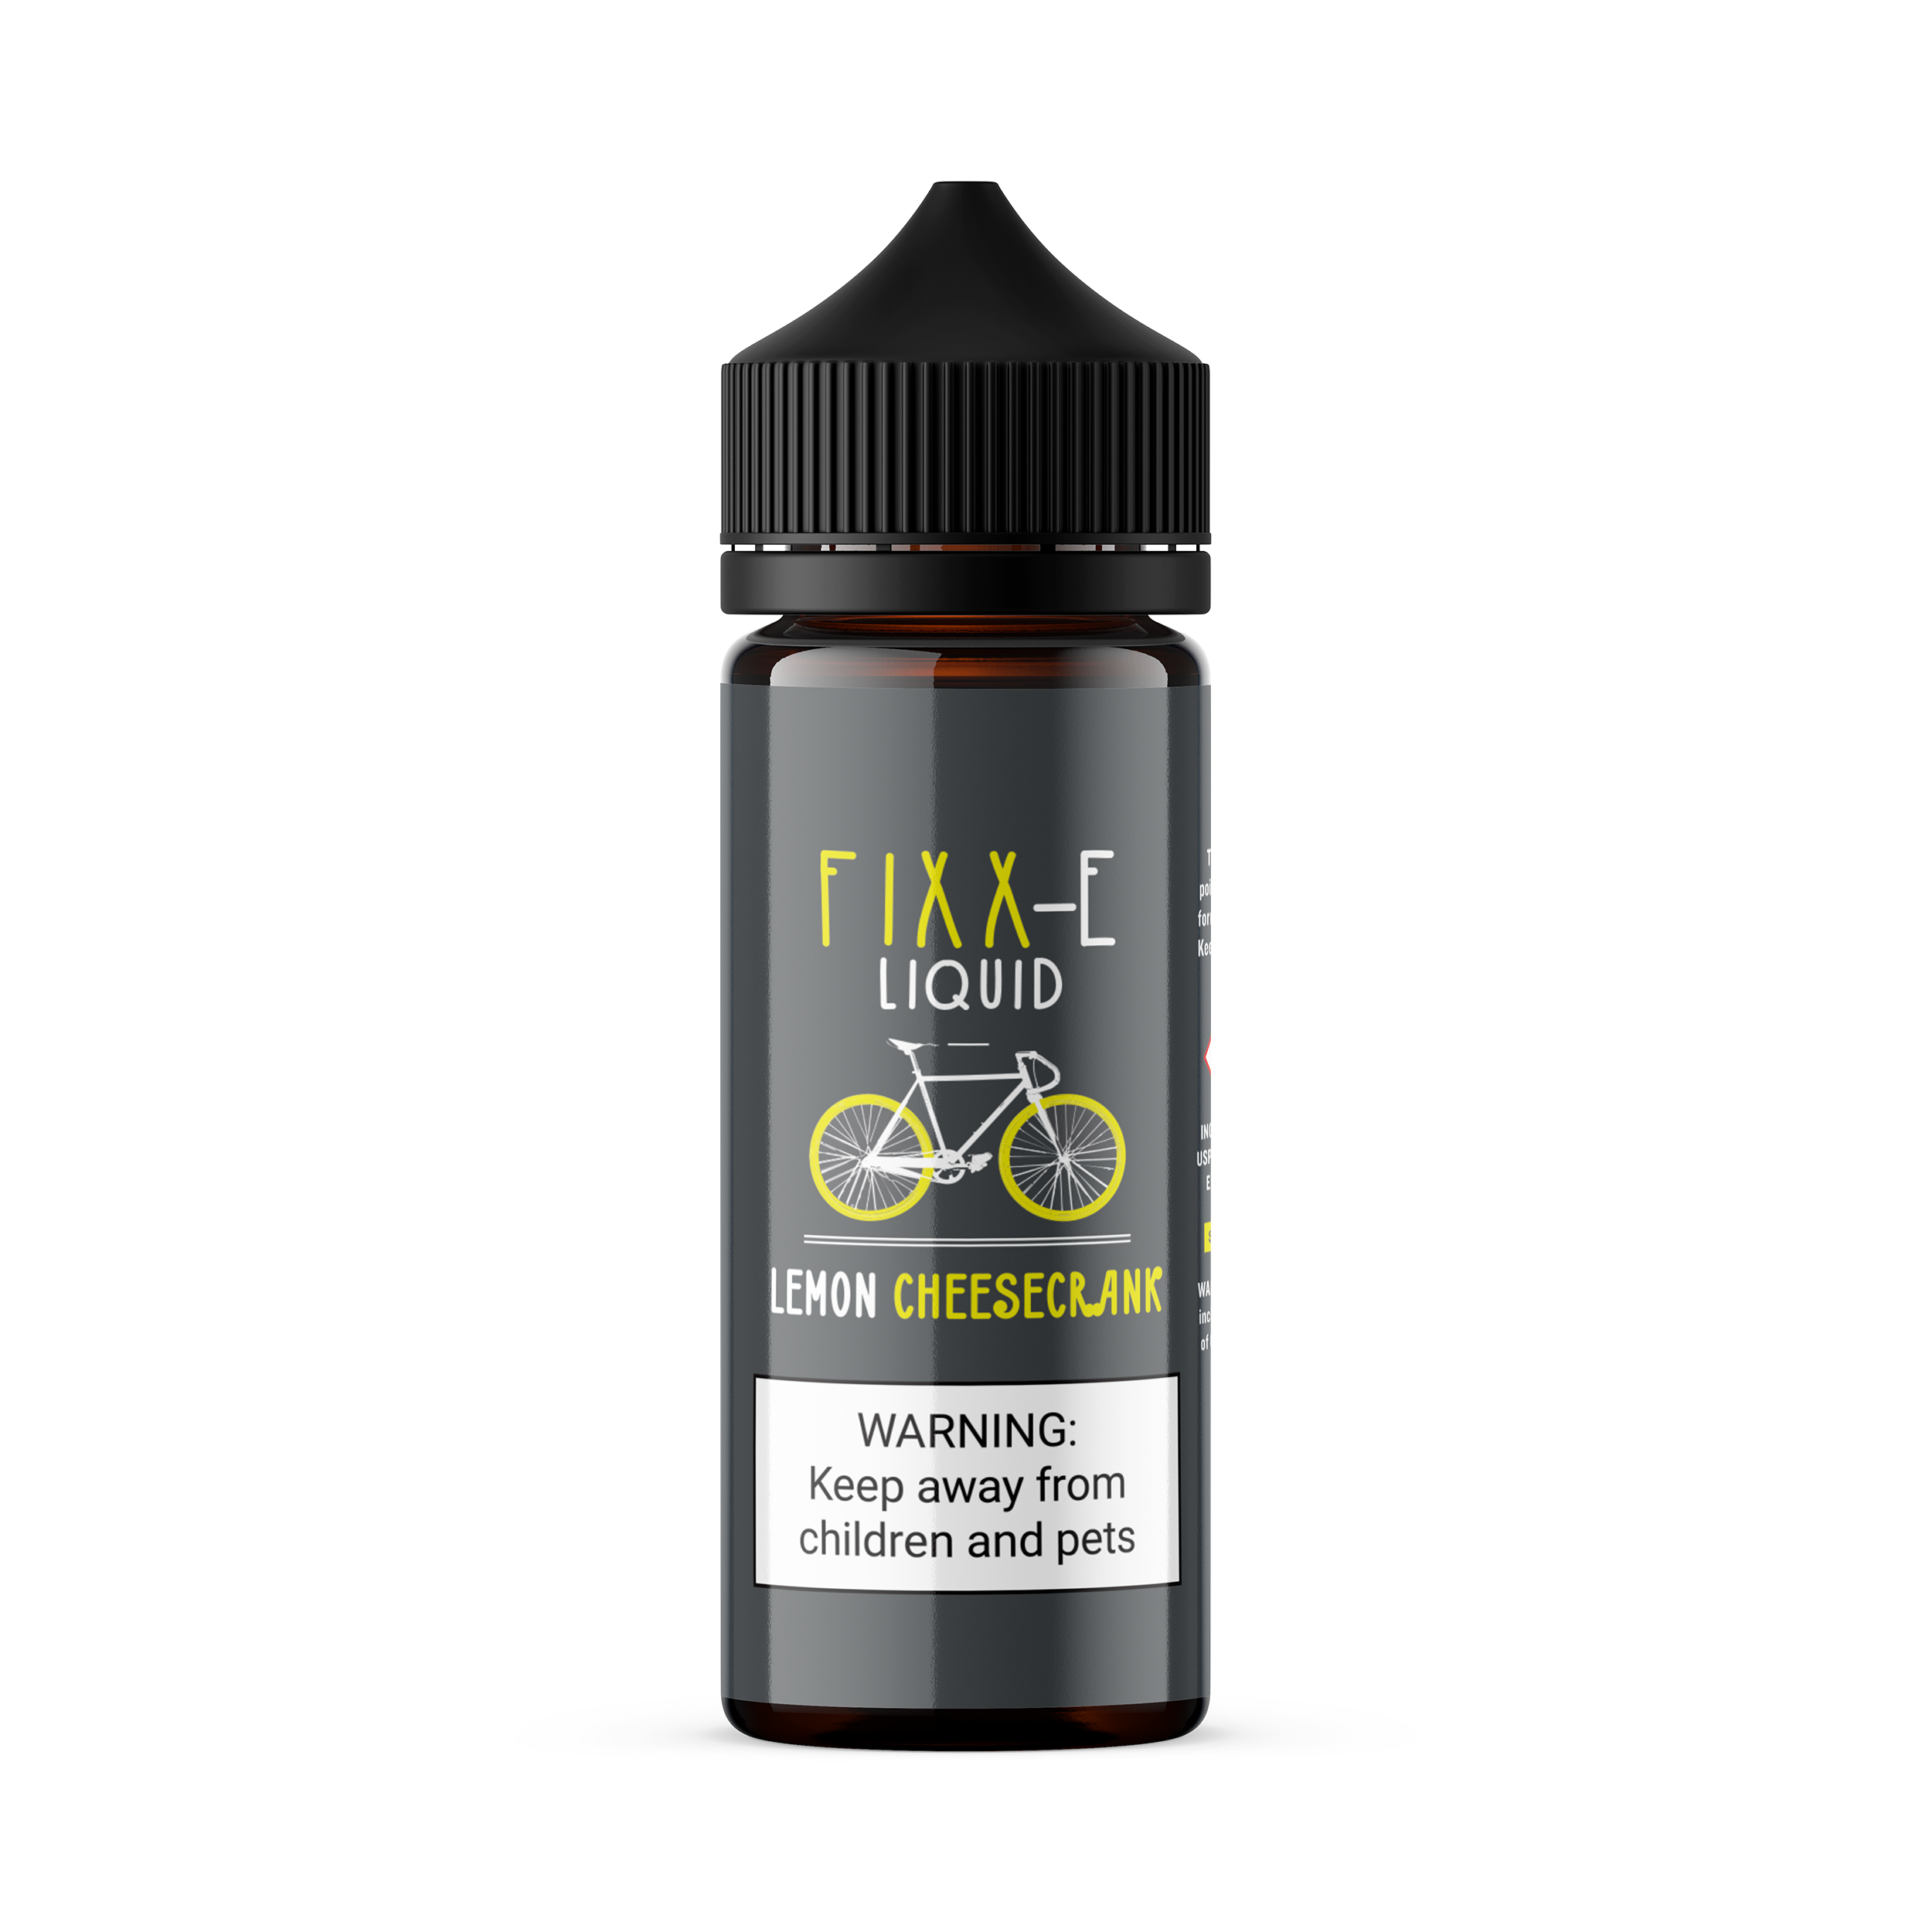 Tasty Cloud Vape Co - Fixx-E - Lemon Cheesecrank